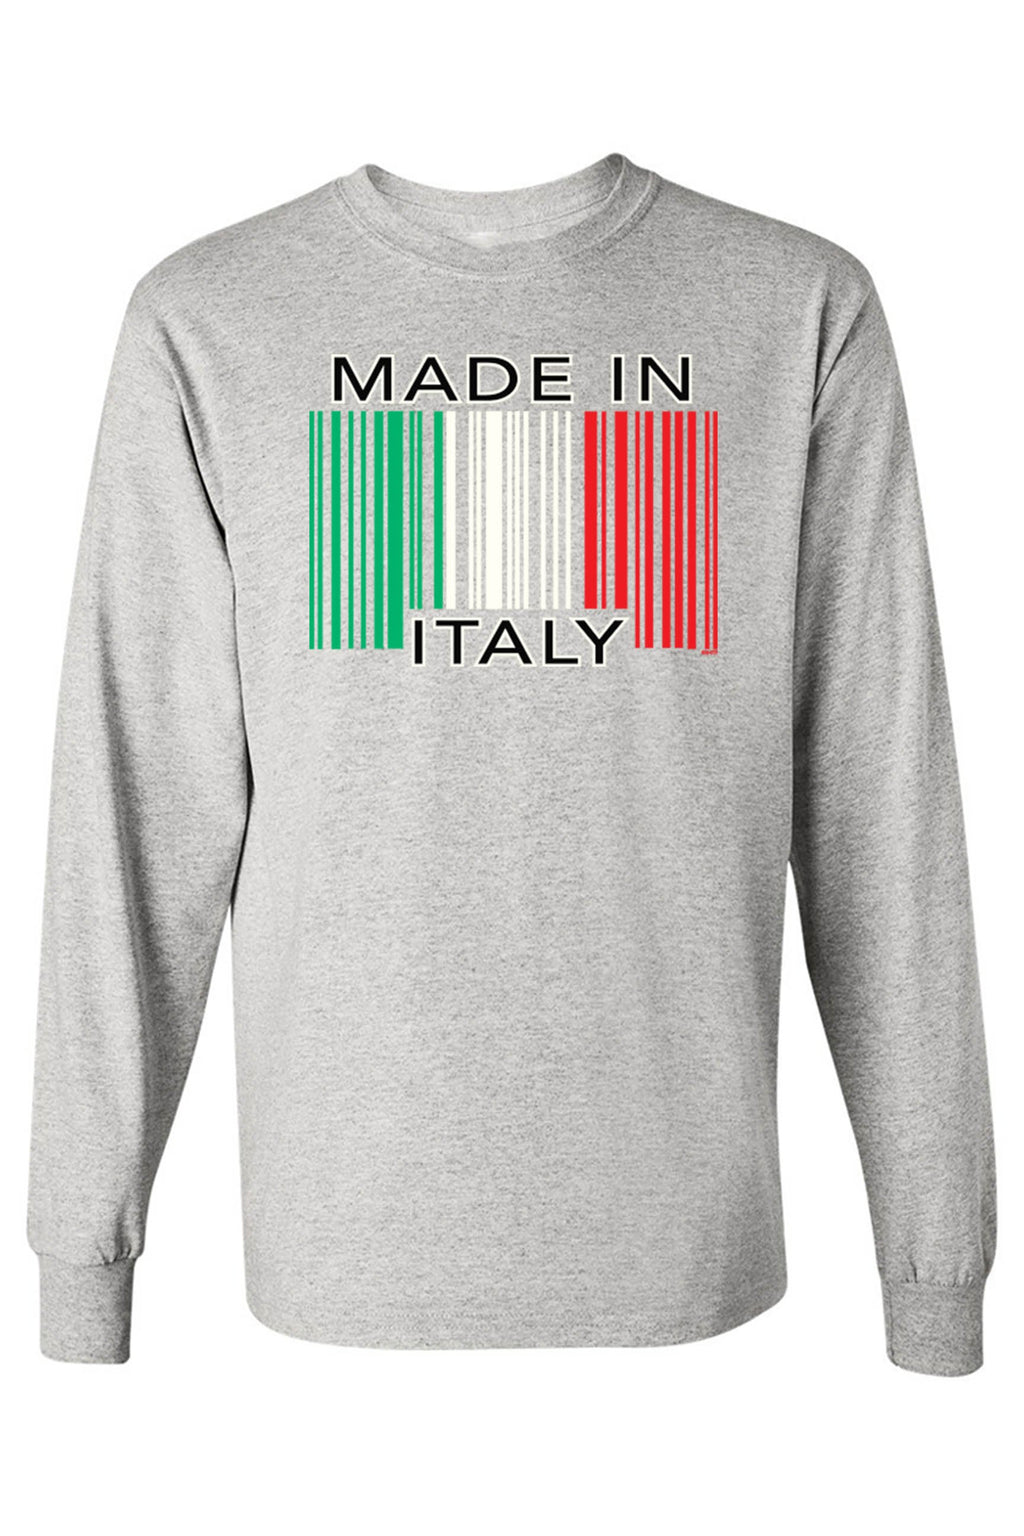 Unisex Funny Made In Italy Missing Prints Long Sleeve shirt